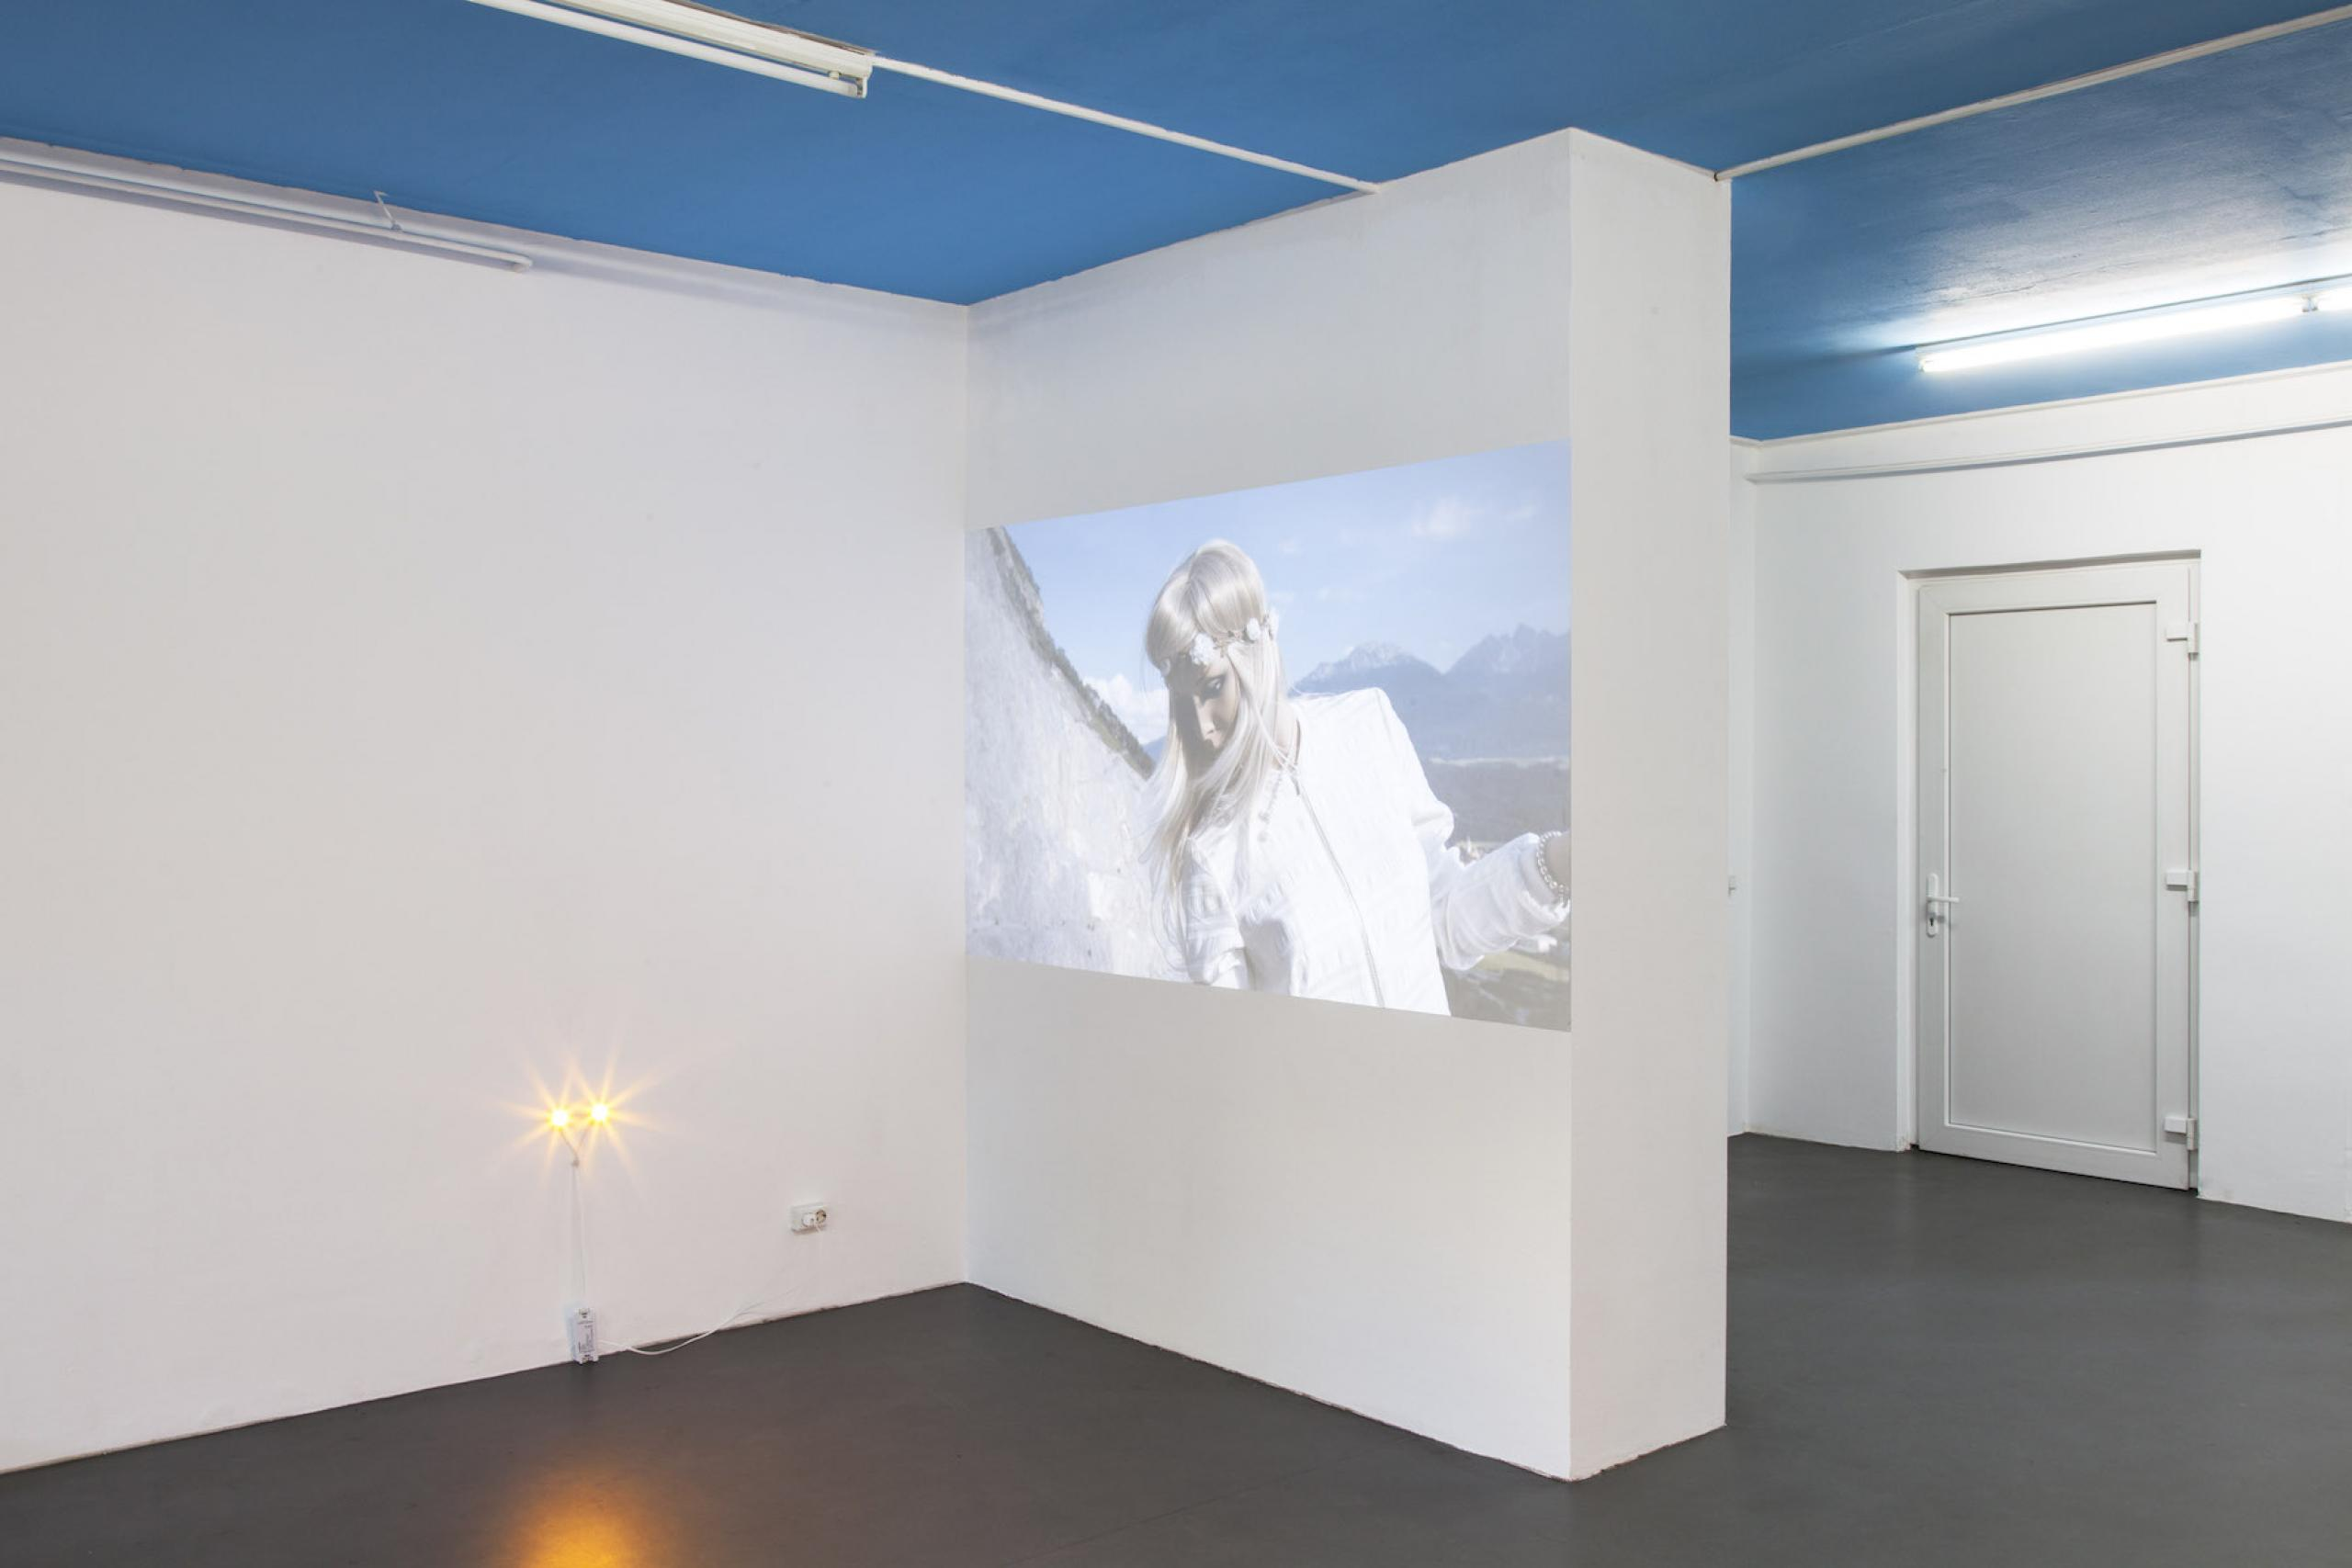 Jason Dodge, Lights the height of dogs eyes. Richard Hoeck & John Miller Mannequin Death, 2016, High definition digital video with sound, 3 mins 14 secs